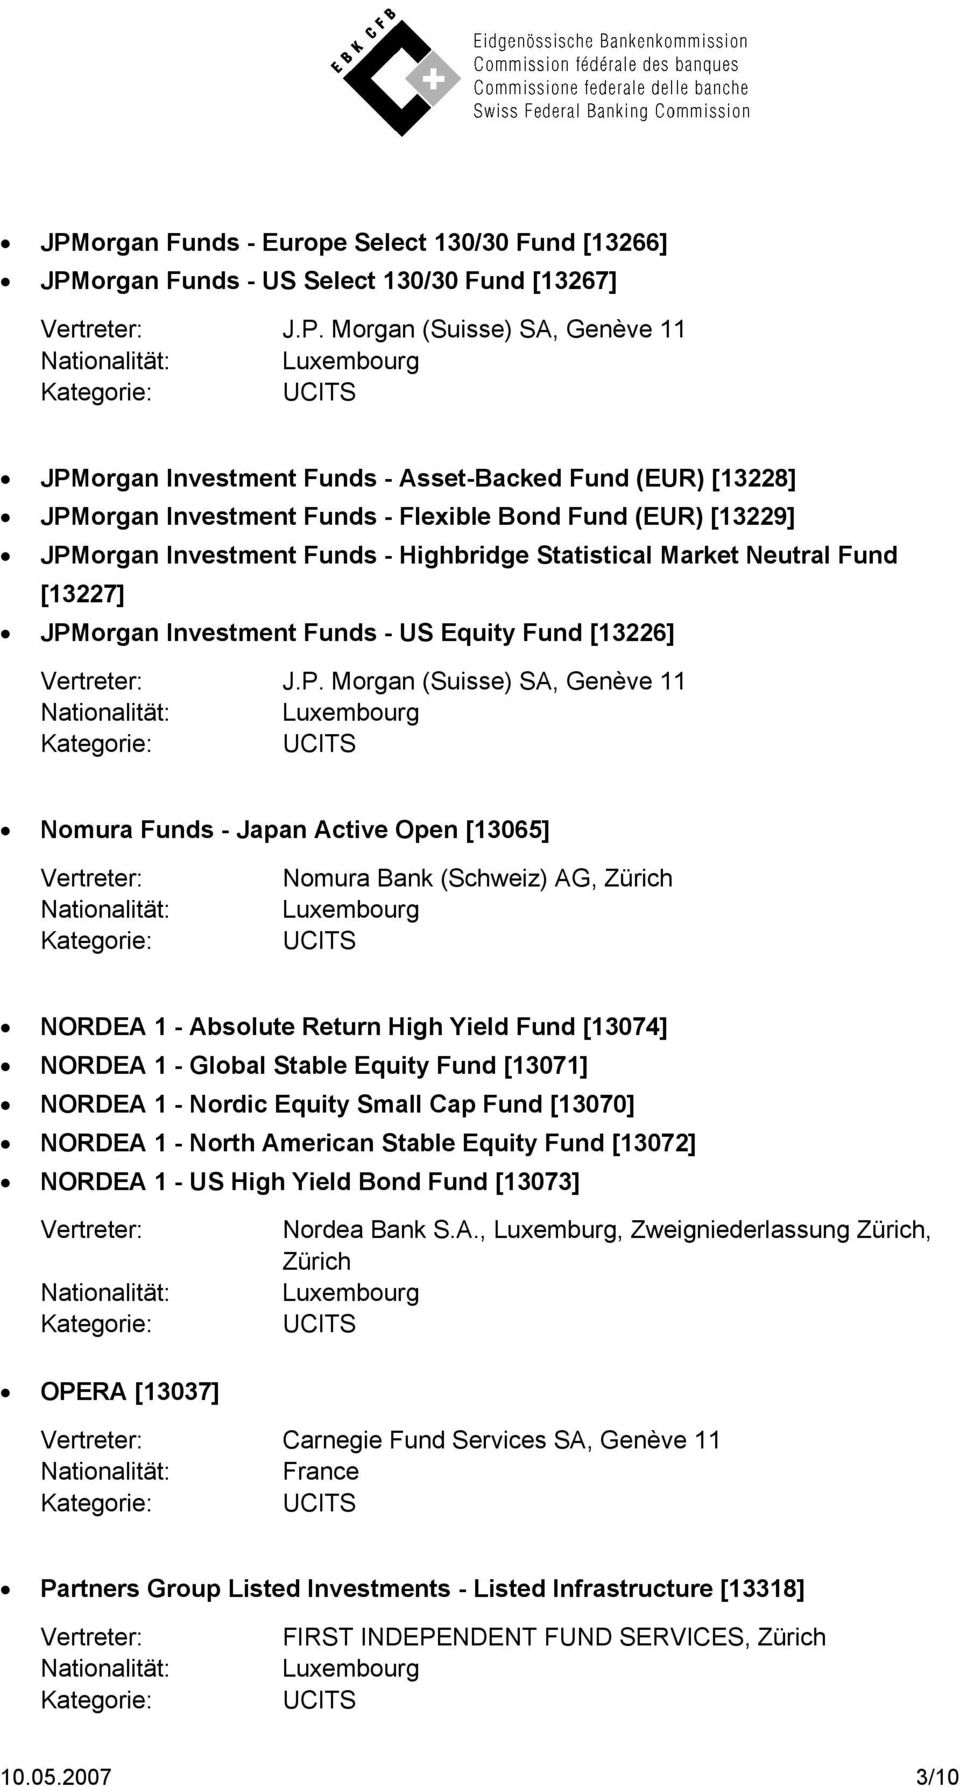 Morgan (Suisse) SA, Genève 11 Nomura Funds - Japan Active Open [13065] Nomura Bank (Schweiz) AG, Zürich NORDEA 1 - Absolute Return High Yield Fund [13074] NORDEA 1 - Global Stable Equity Fund [13071]